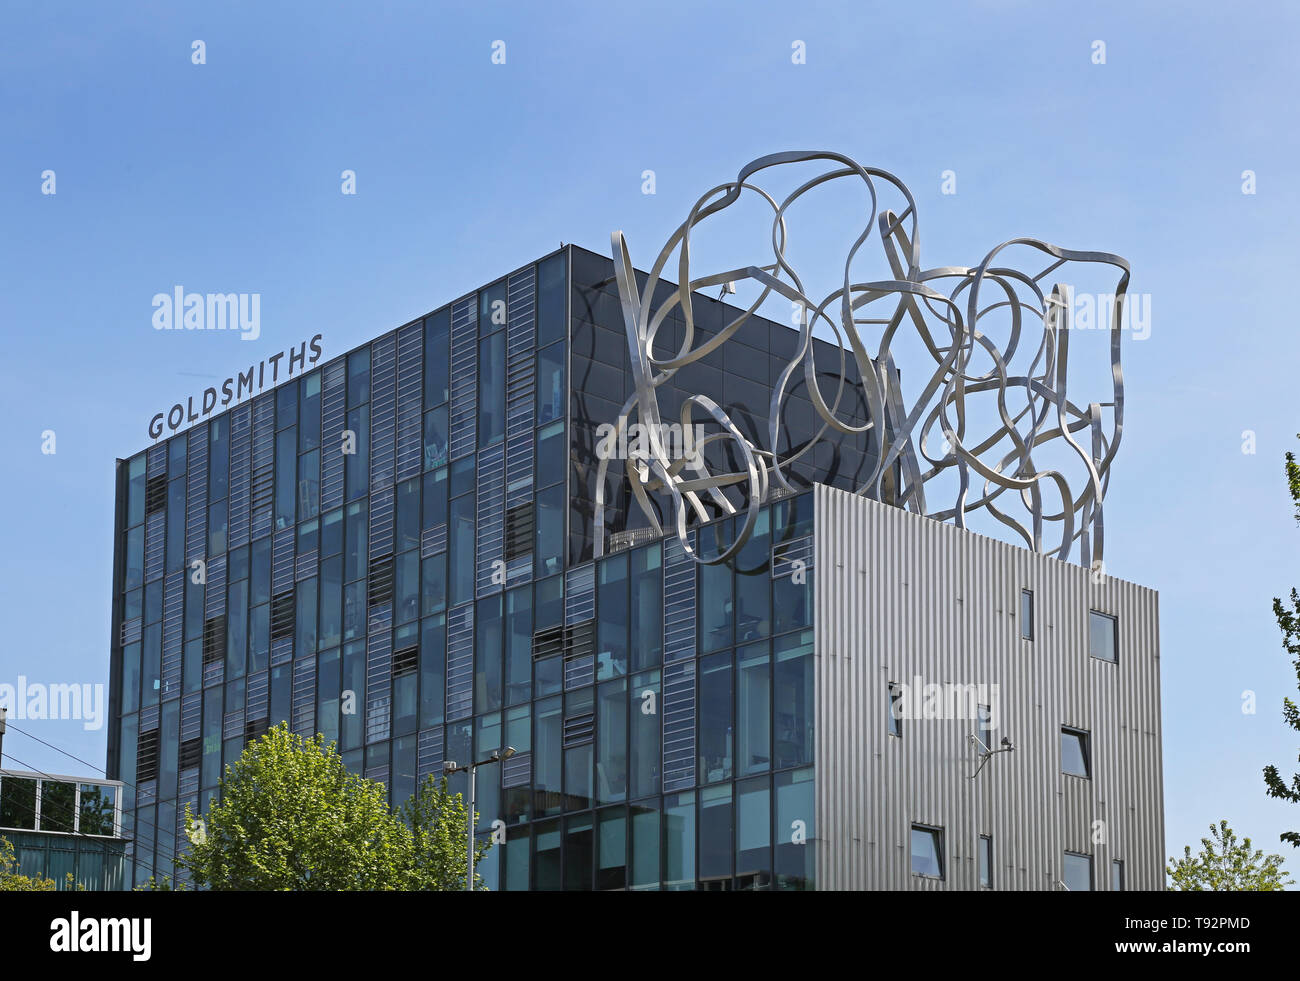 Goldsmiths College, southeast London. The Ben Pimlott Building (2005) with roof-top 'Scribble' sculpure. Designed by Will Alsop and Partners - Stock Image